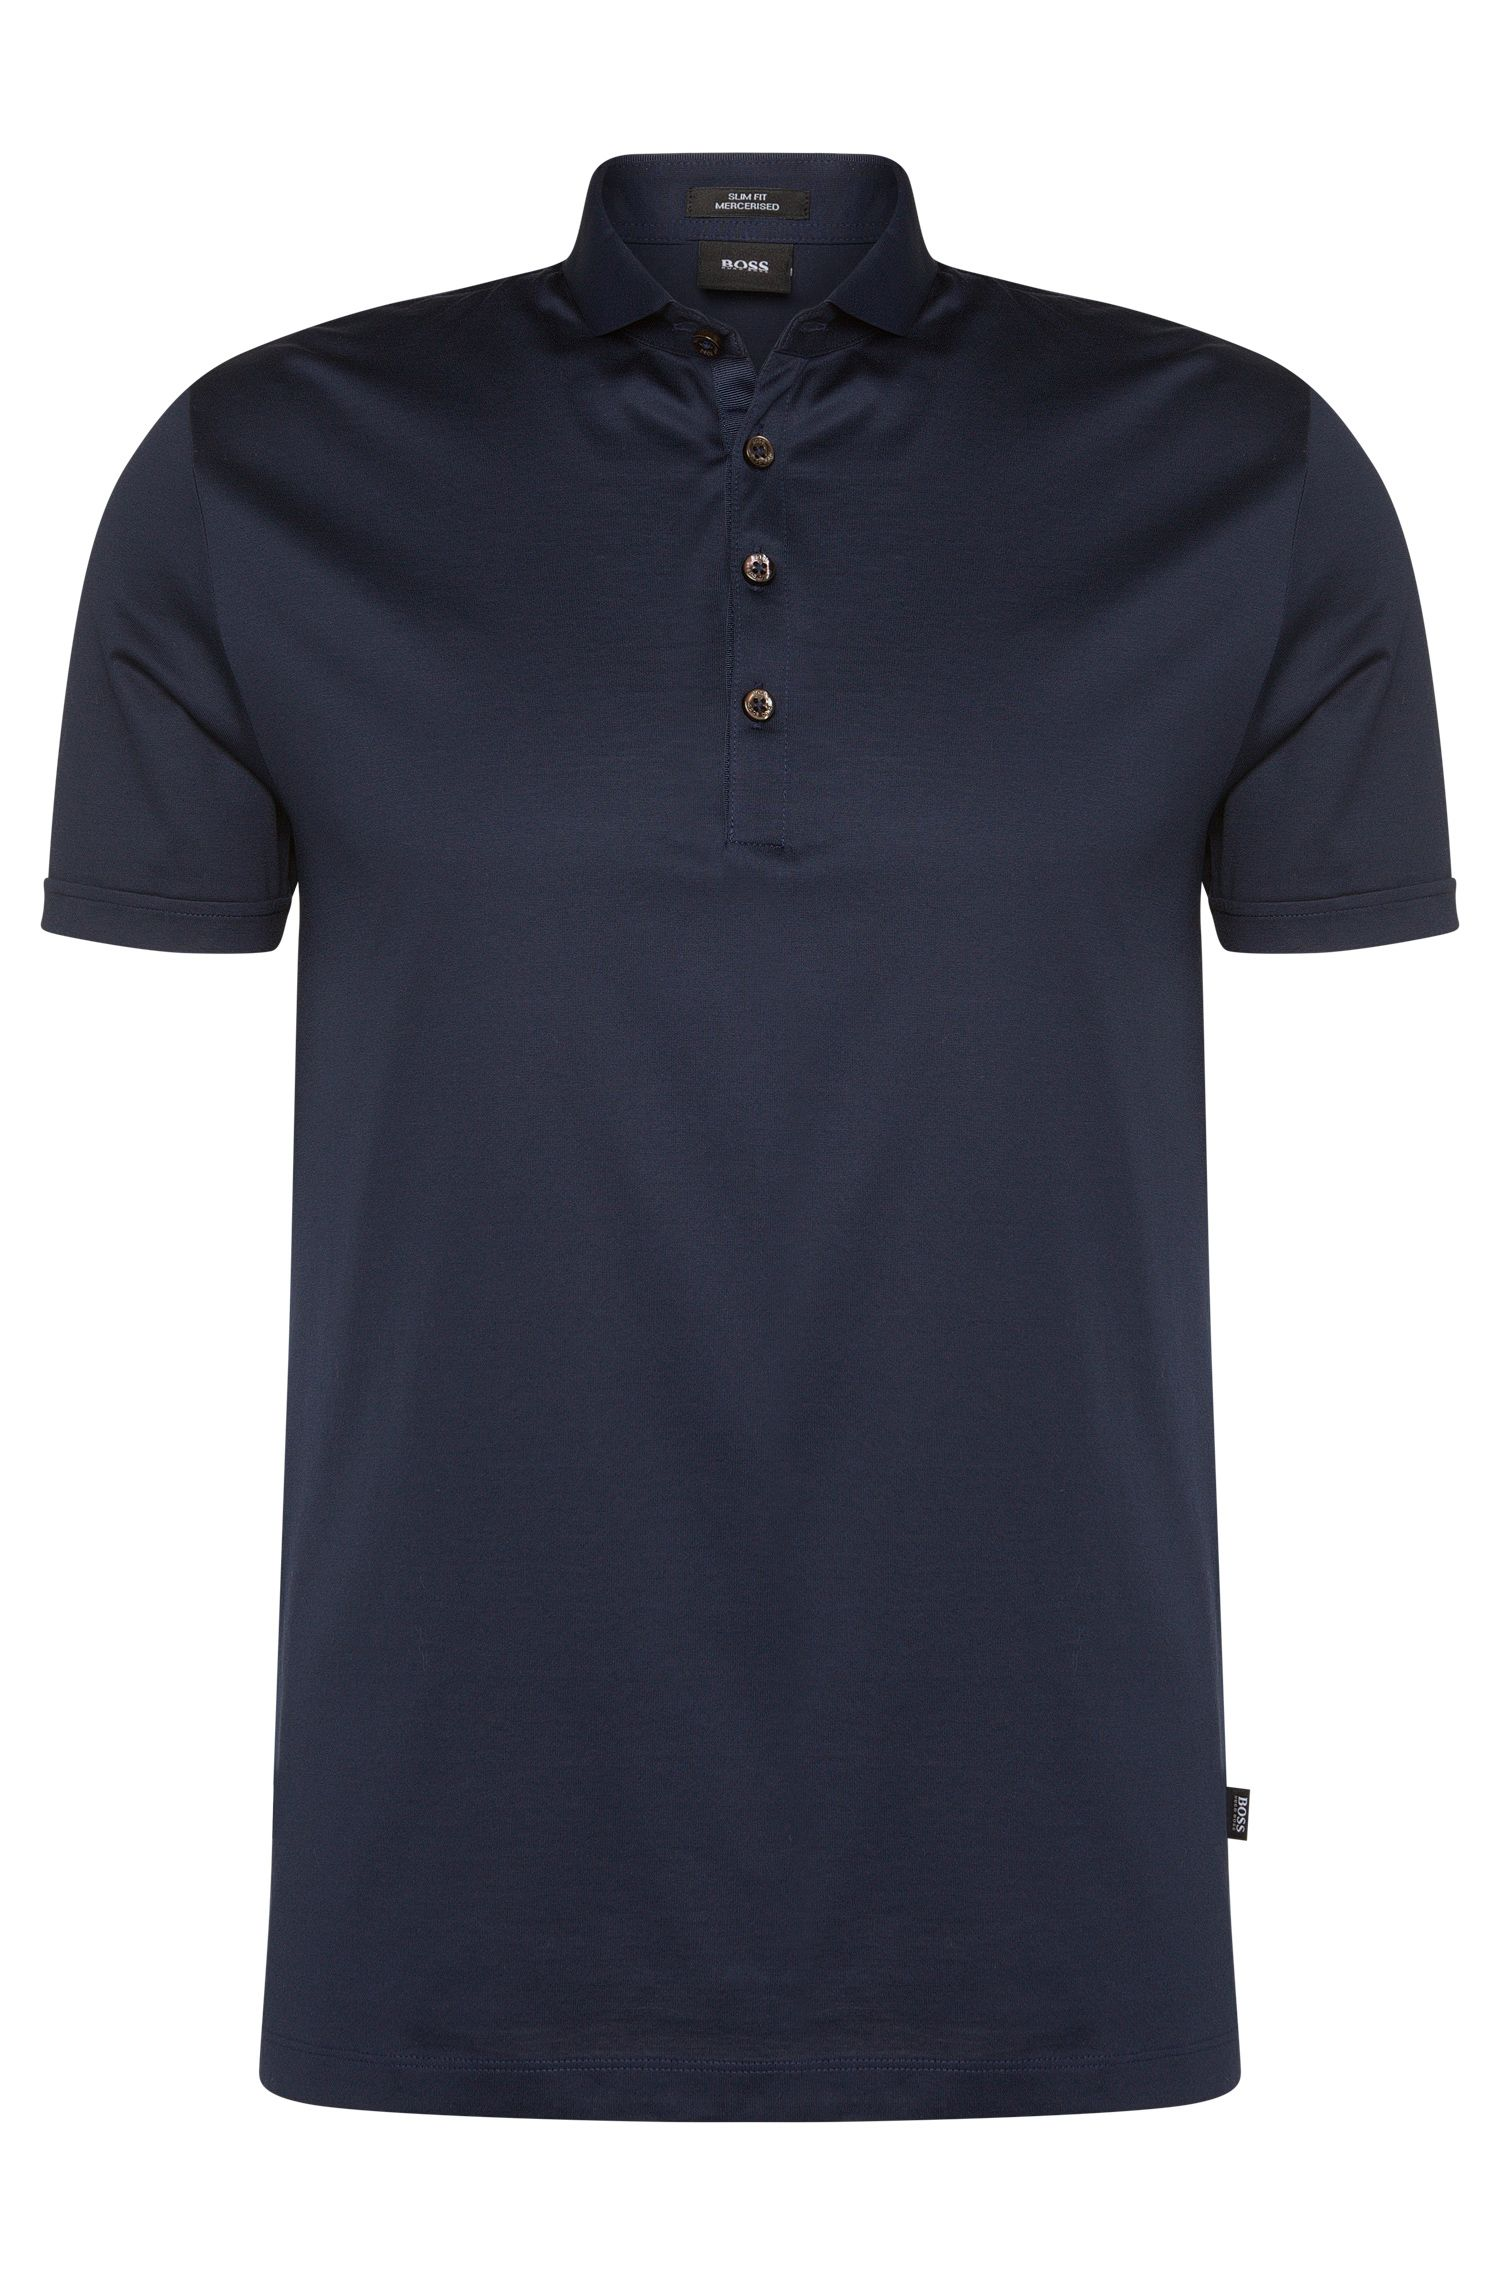 'Plummer' | Slim Fit, Mercerized Cotton Polo Shirt